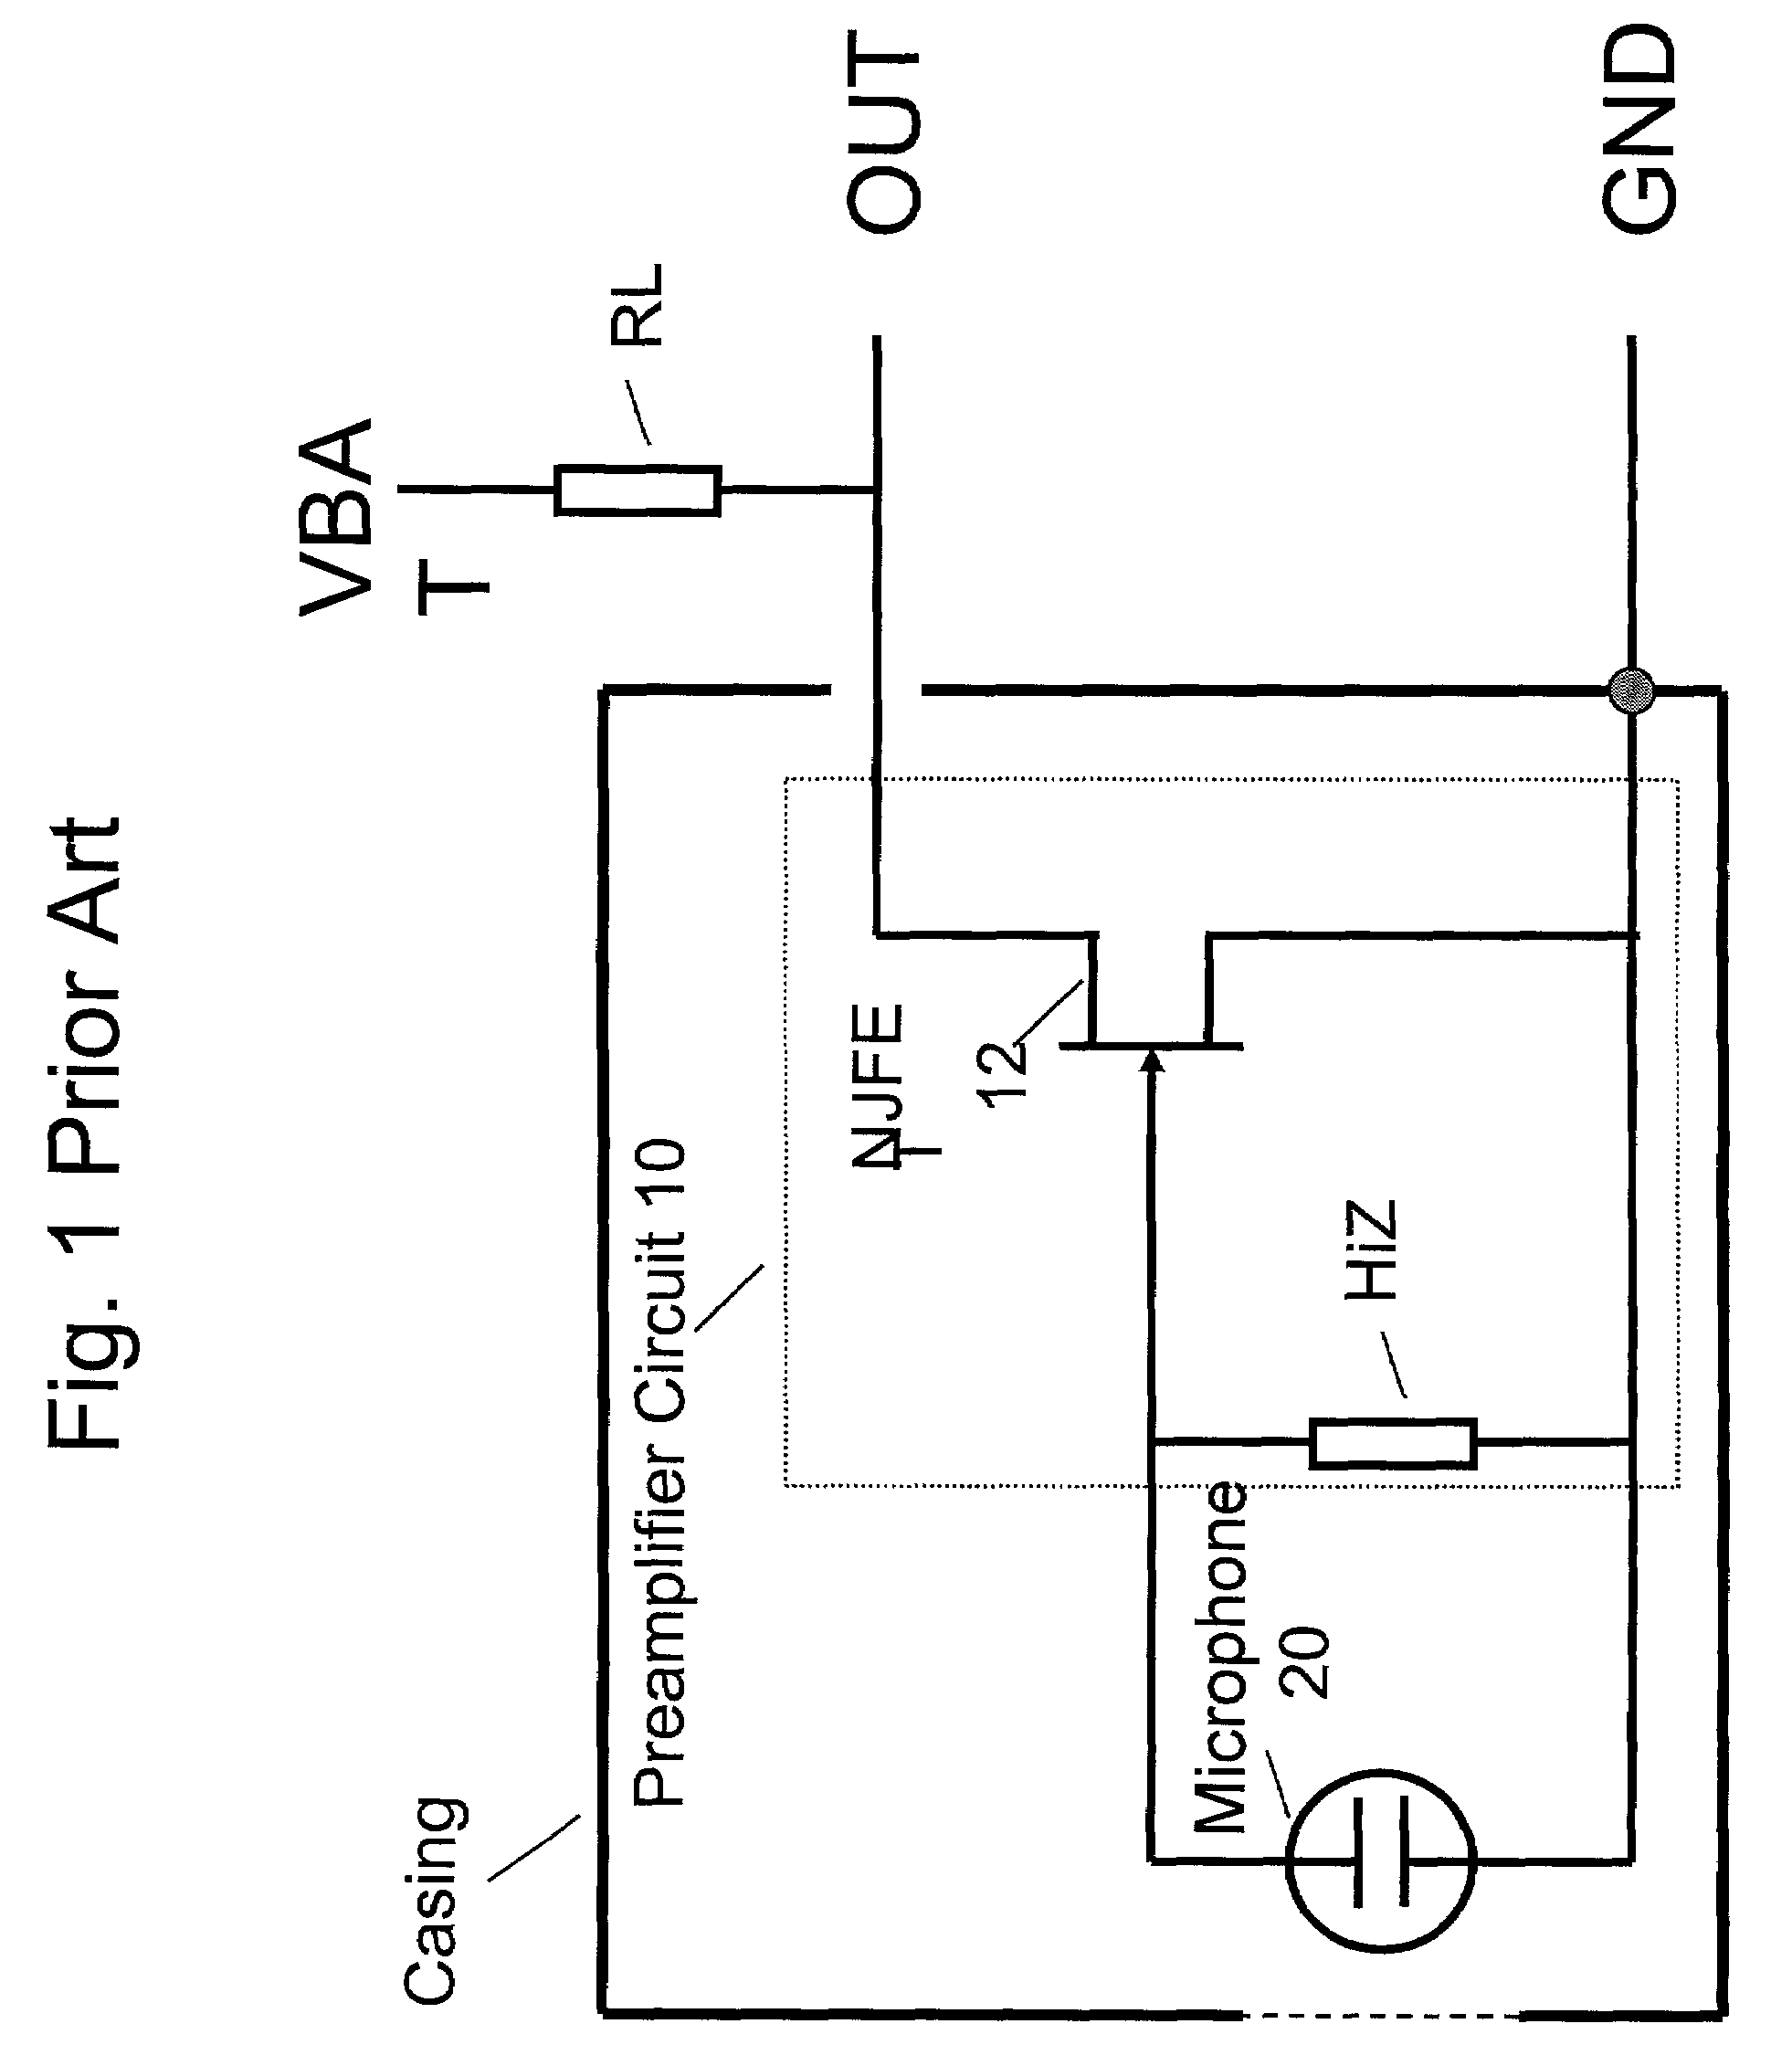 Patent US7110560 - Electret condensor microphone preamplifier that